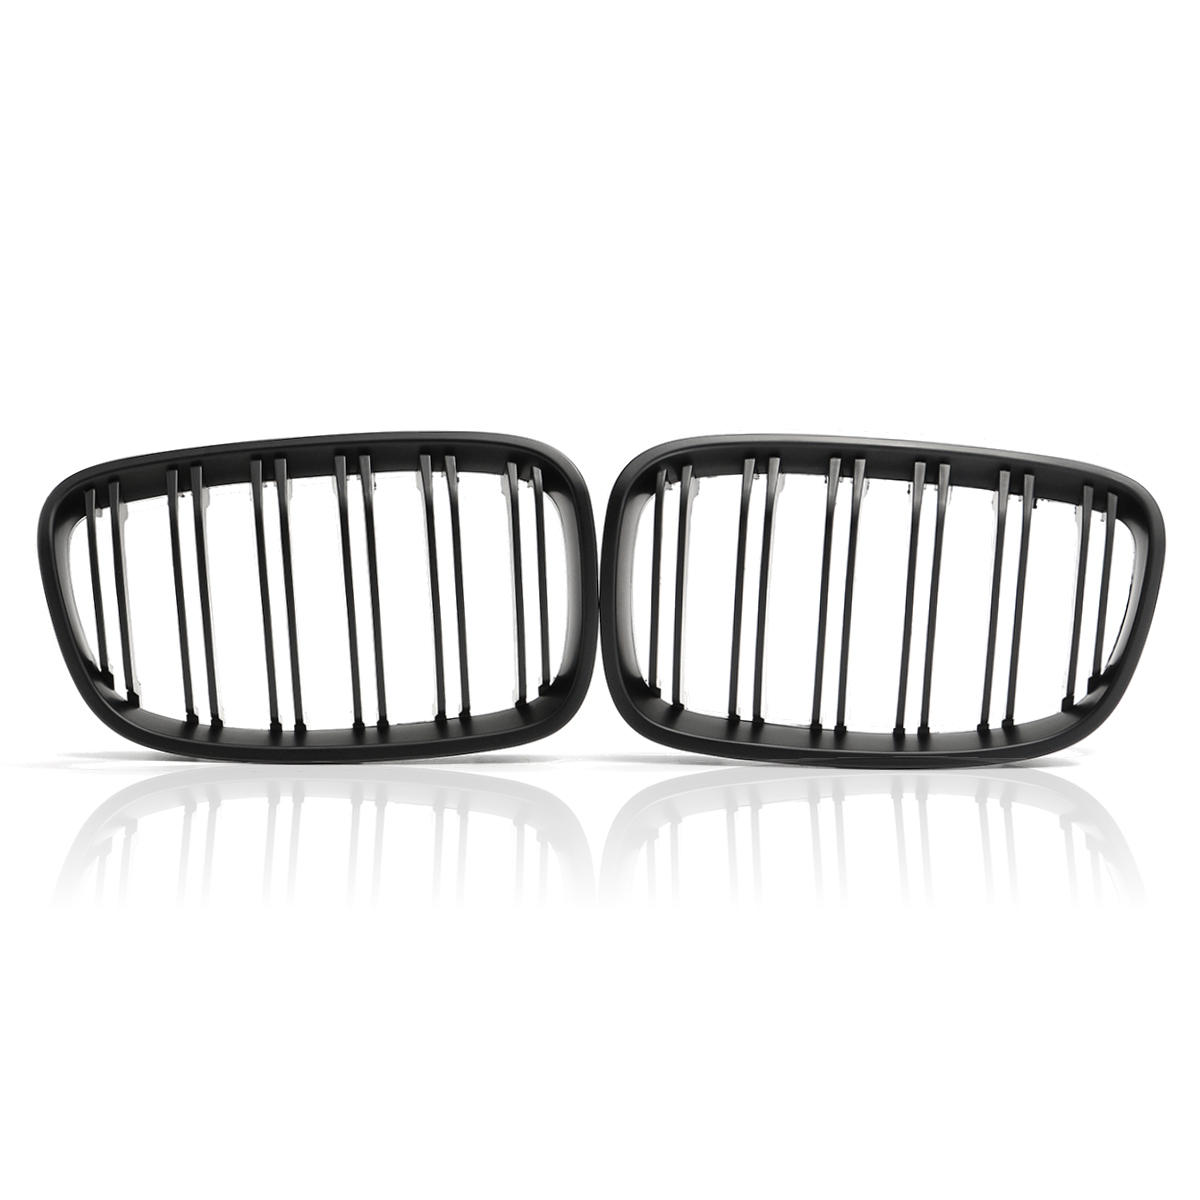 One Paire Matt Black Front Bumper Grille Double Slat pour BMW F20 1 Series 2010-2014